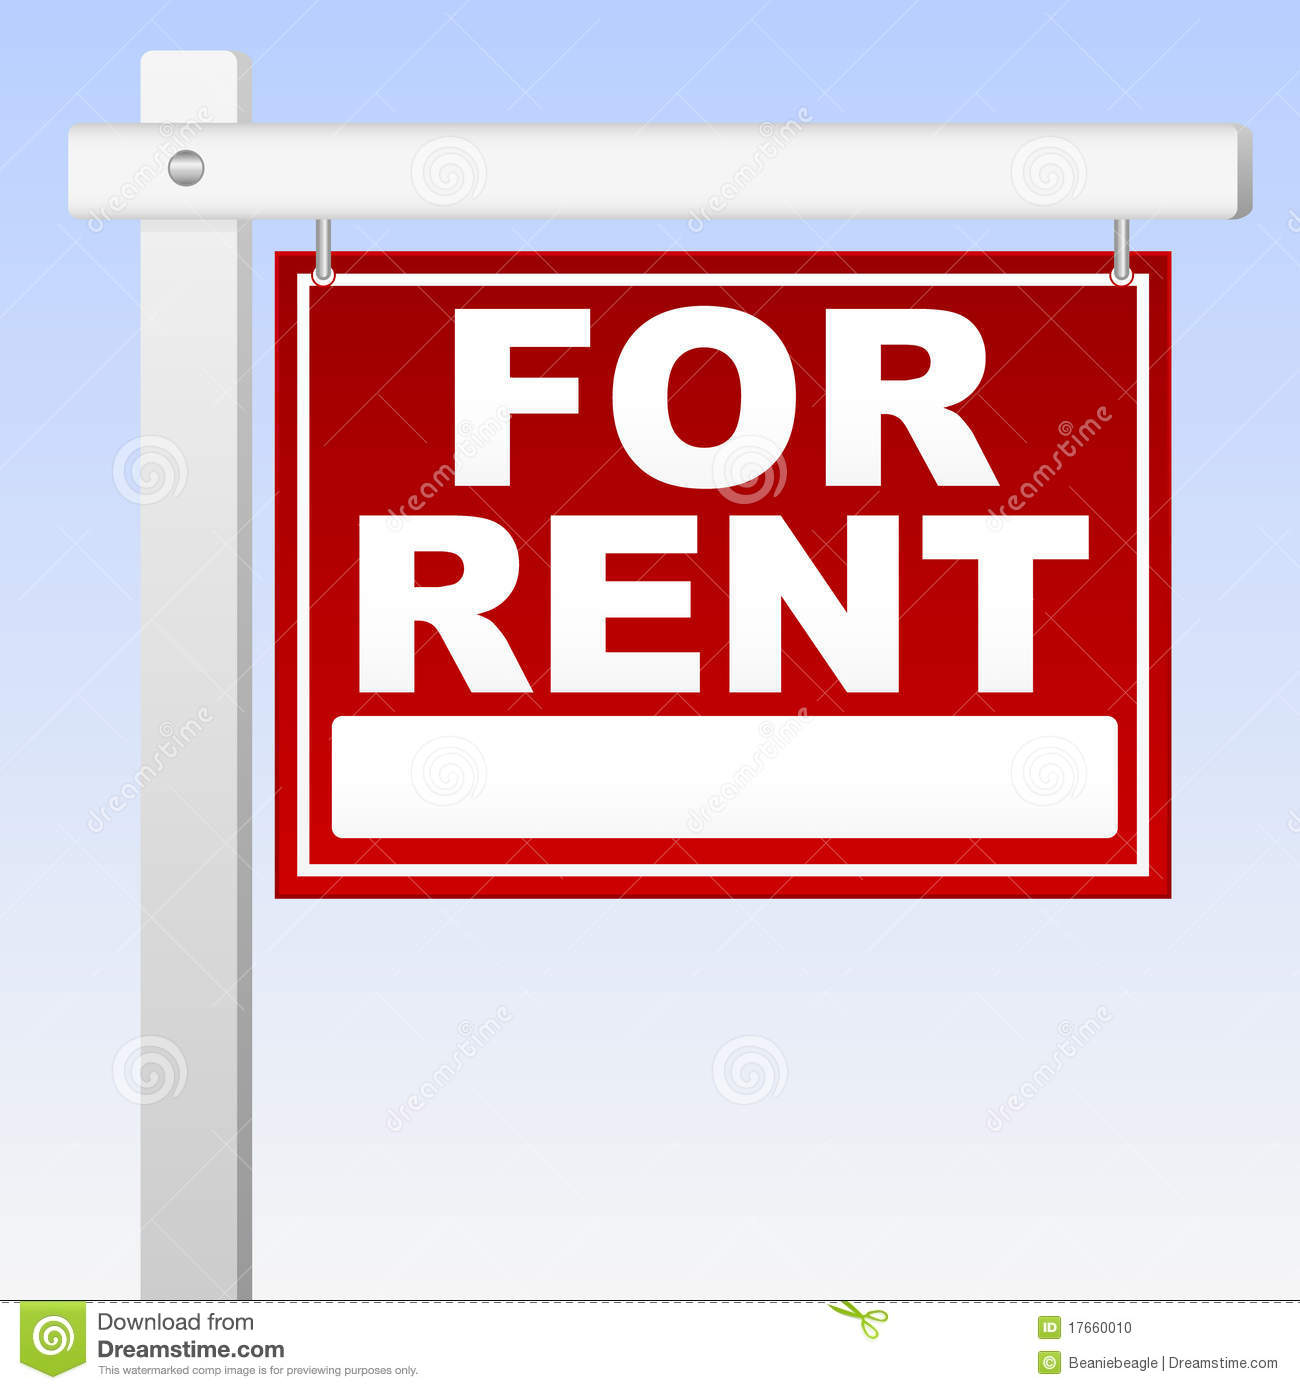 For Rwnt: For Rent Sign Stock Photo